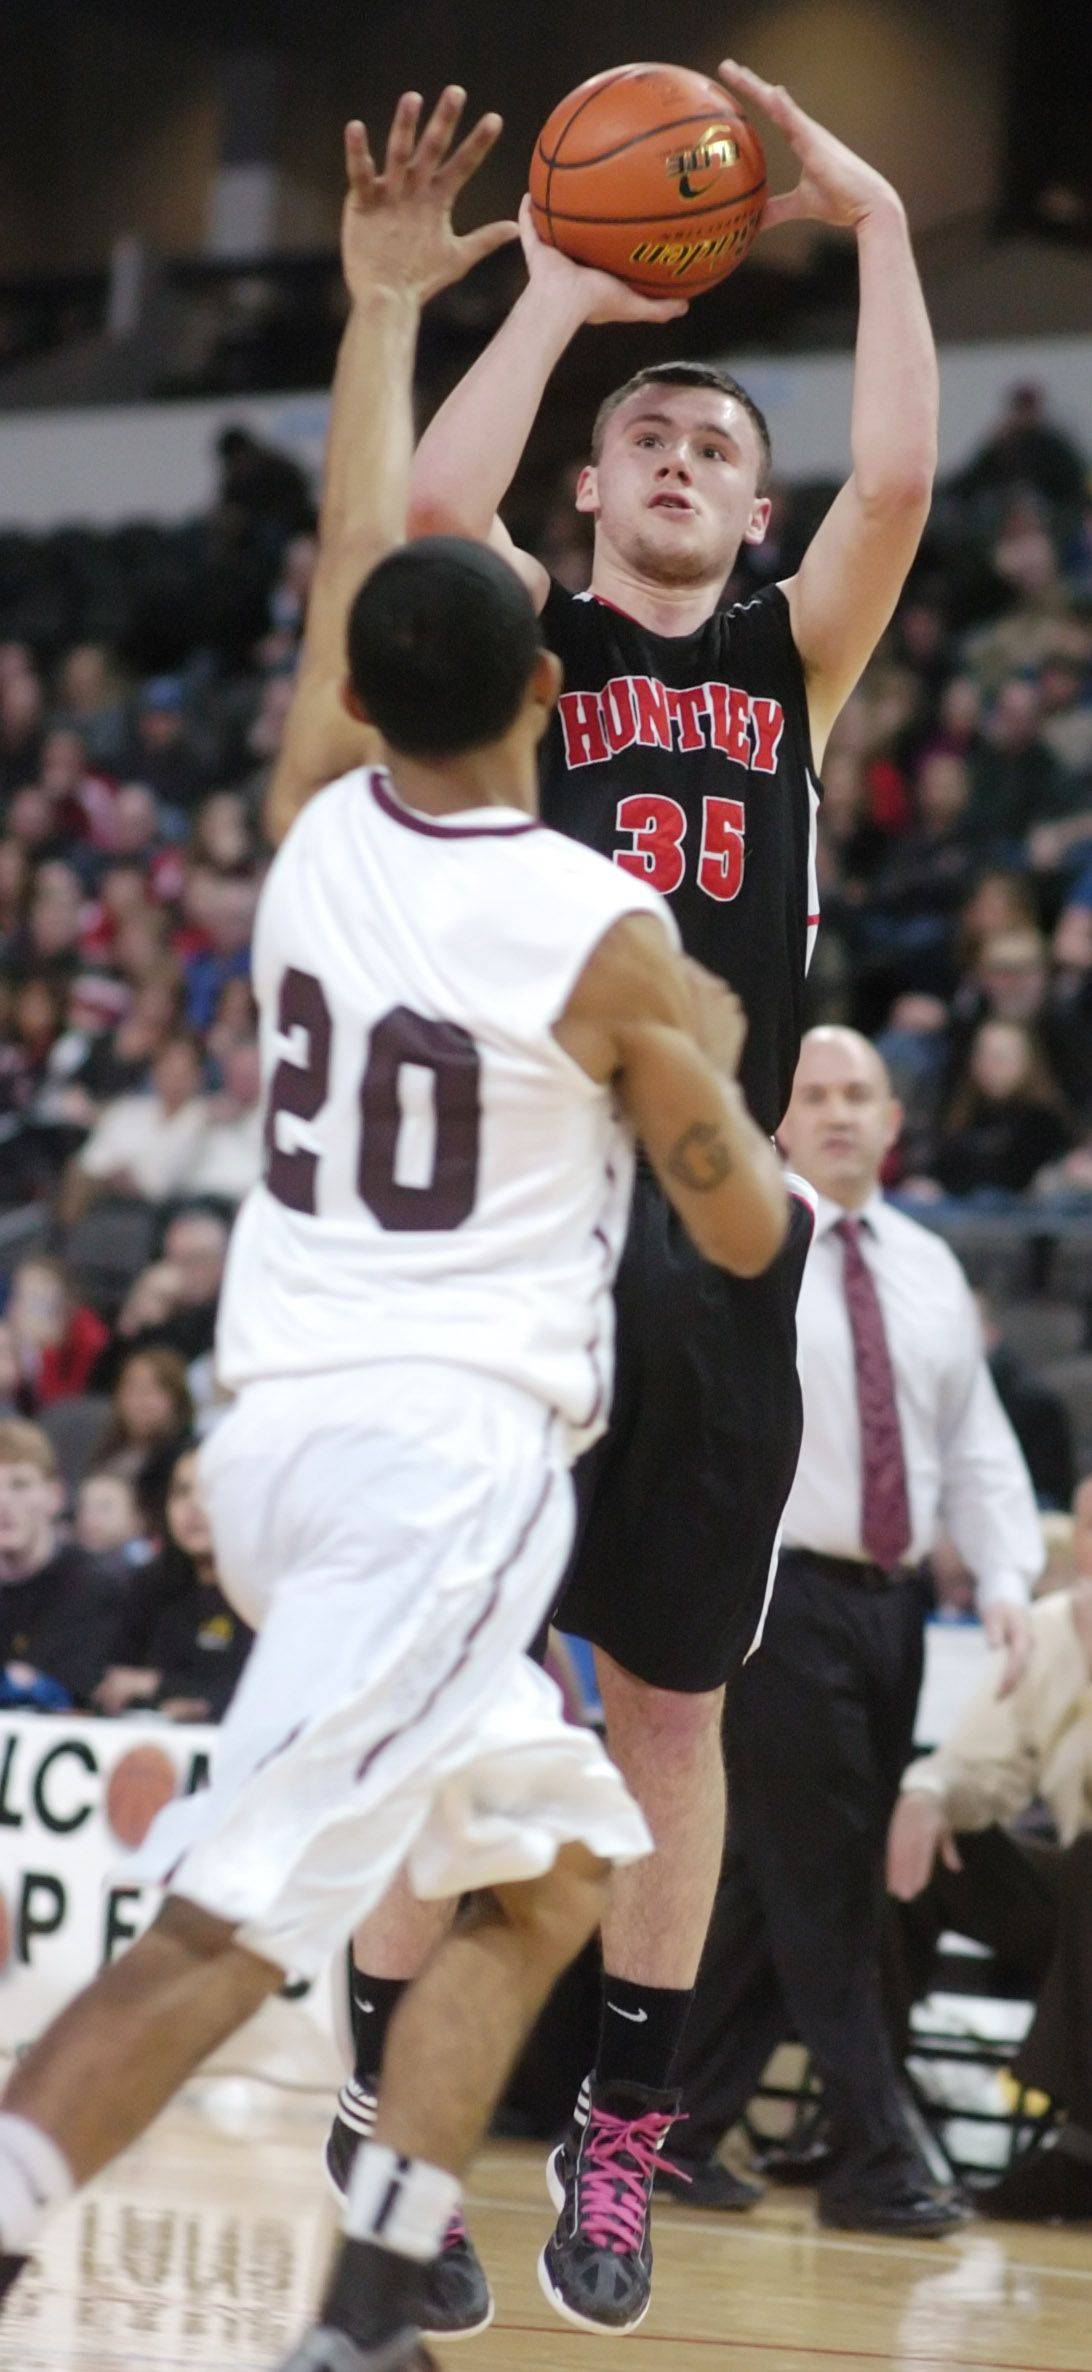 Huntley's Justin Frederick takes a shot as Elgin's Devin Gilliam defends during Saturday's High School Hoops Showdown game at the Sears Centre in Hoffman Estates.